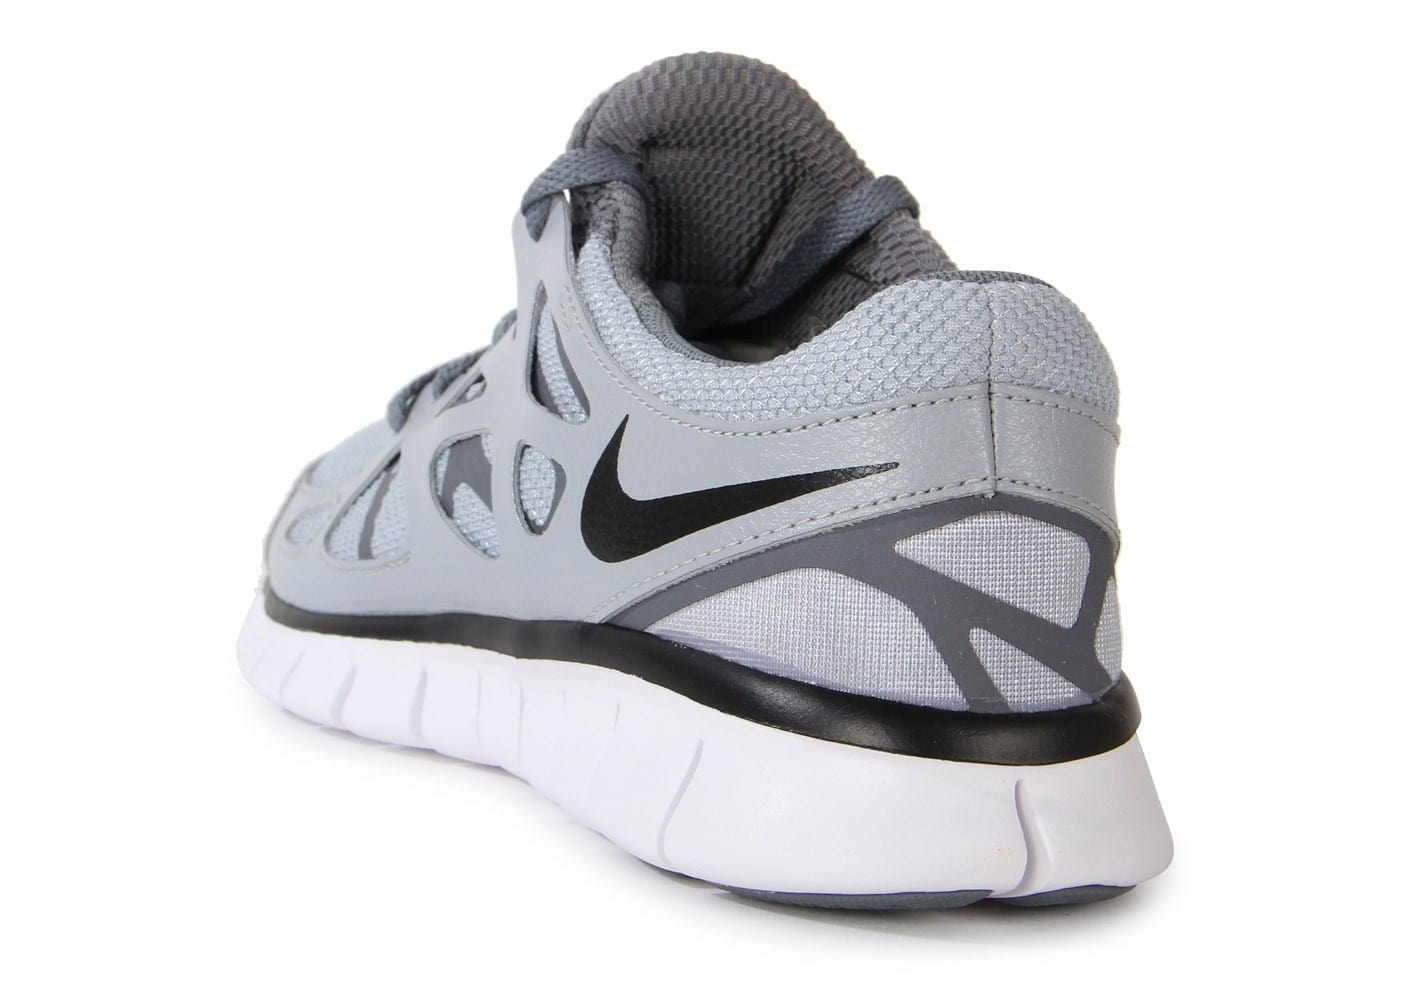 timeless design 70711 5f6a2 ... Chaussures Nike Free Run 2 Ext Grise vue arrière ...